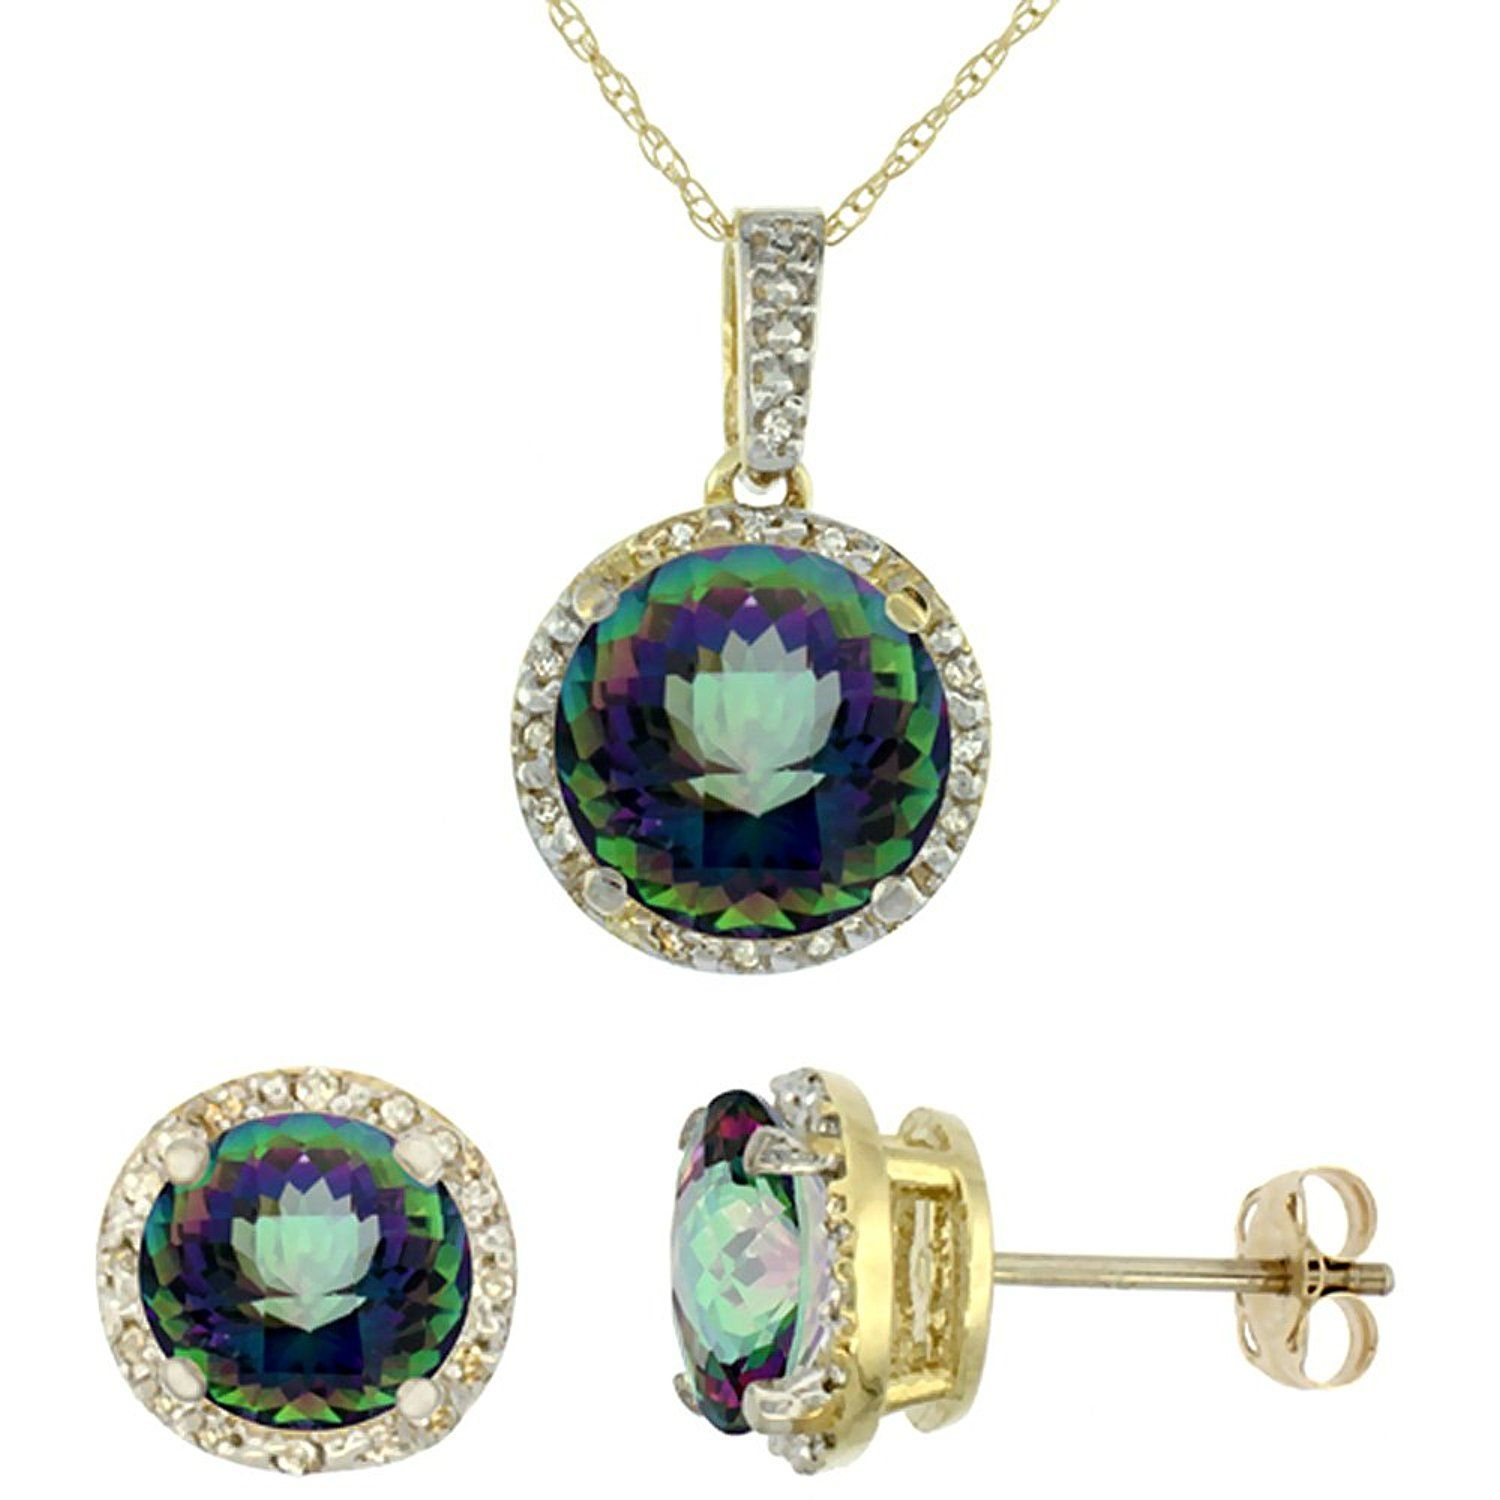 K yellow gold natural round mystic topaz earrings and pendant set